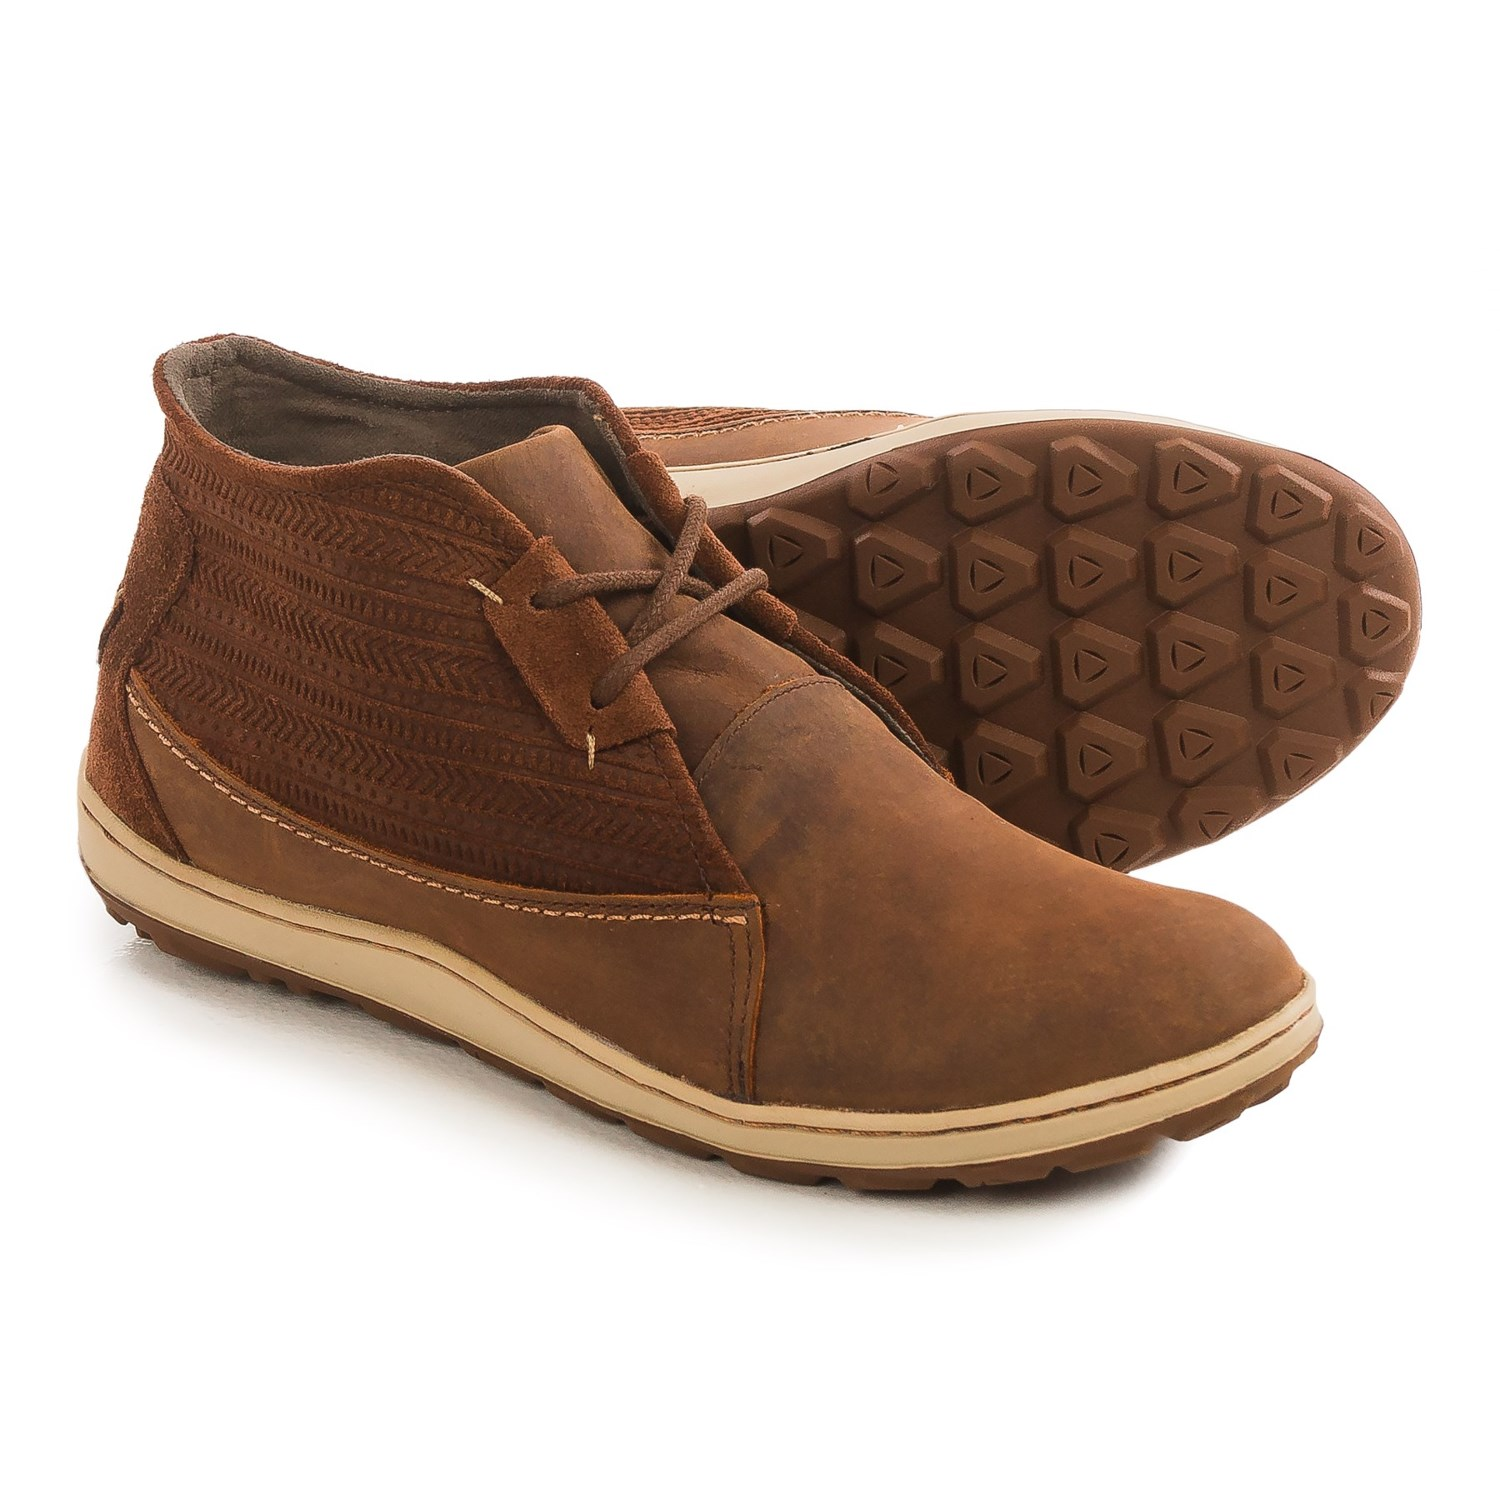 Sierra Trading Women S Shoes